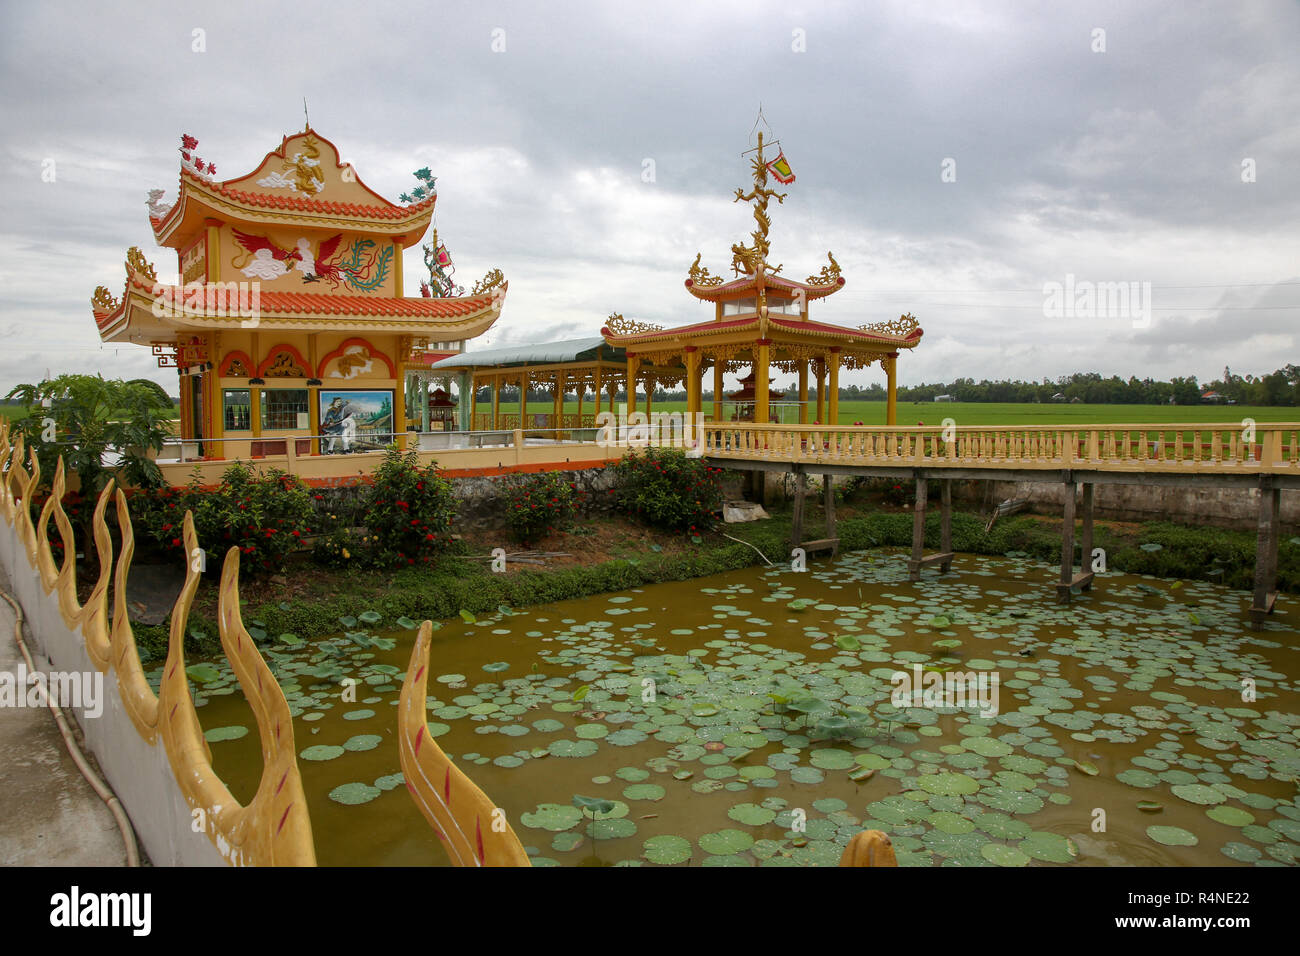 Anh Hung Toc, Anh Giang province - Stock Image